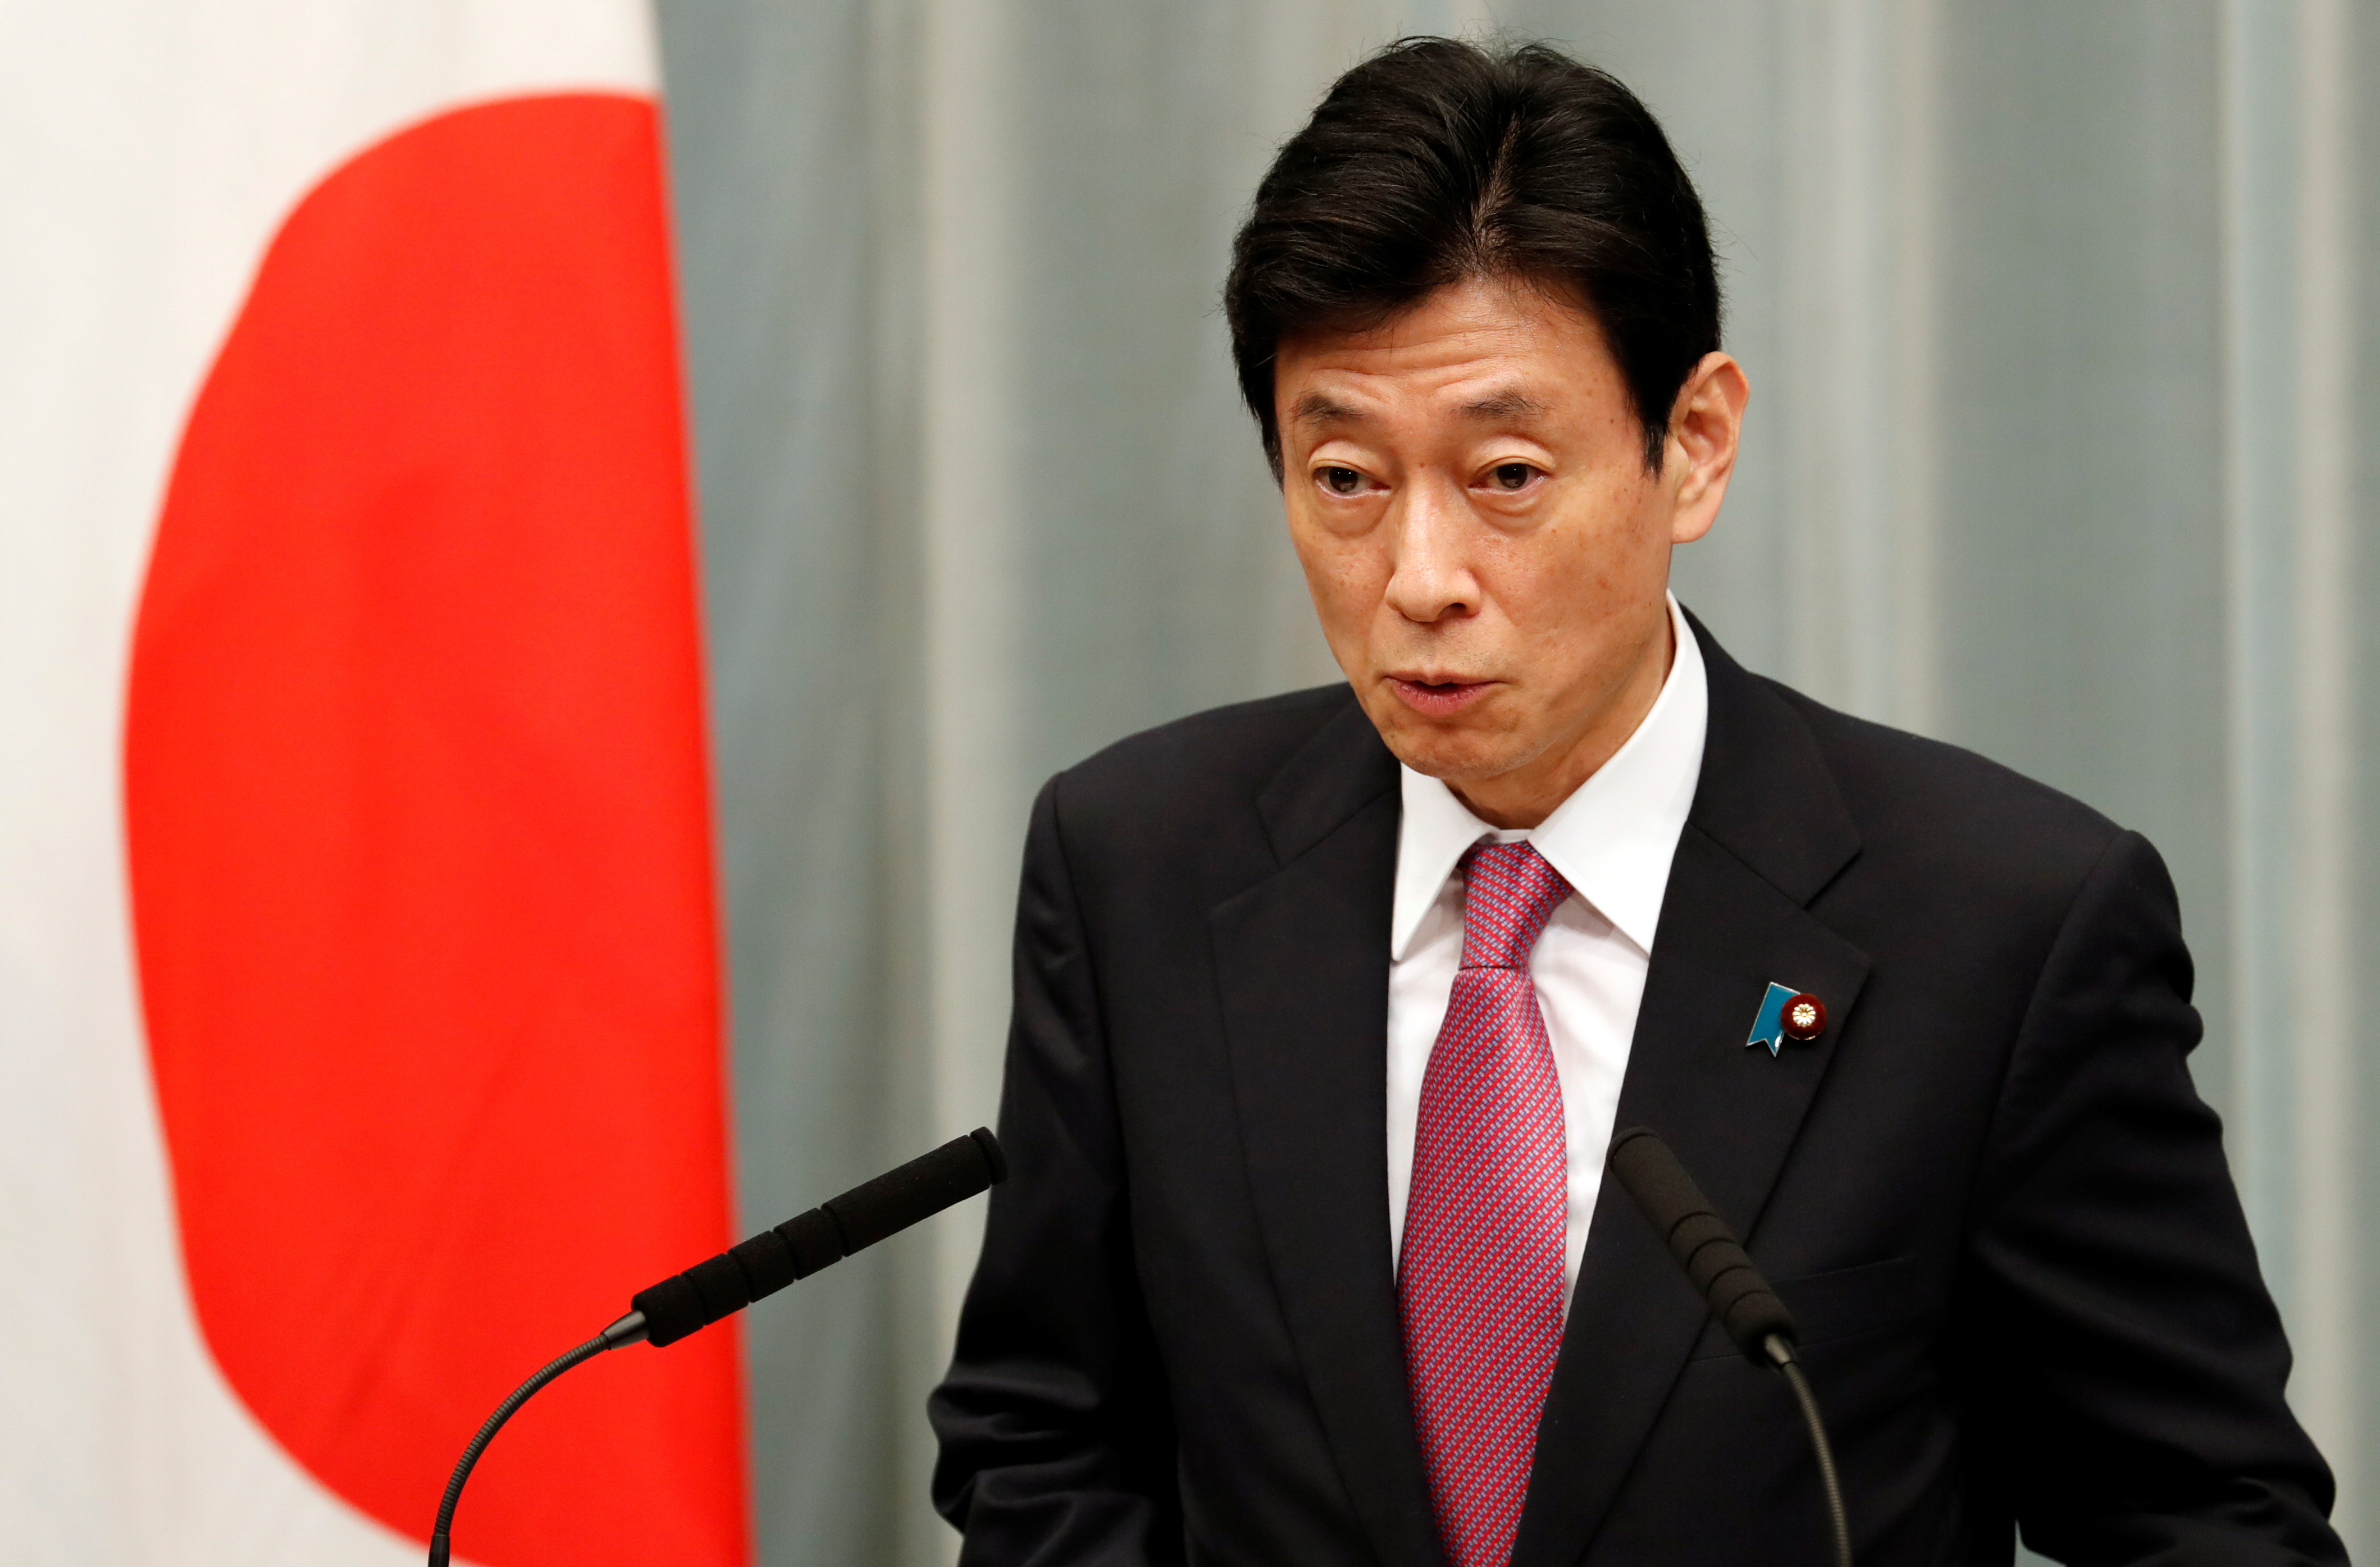 Japan's Minister in charge of economic revitalisation and measures for the novel coronavirus pandemic Yasutoshi Nishimura attends a news conference in Tokyo, Japan, September 16, 2020. REUTERS/Kim Kyung-Hoon